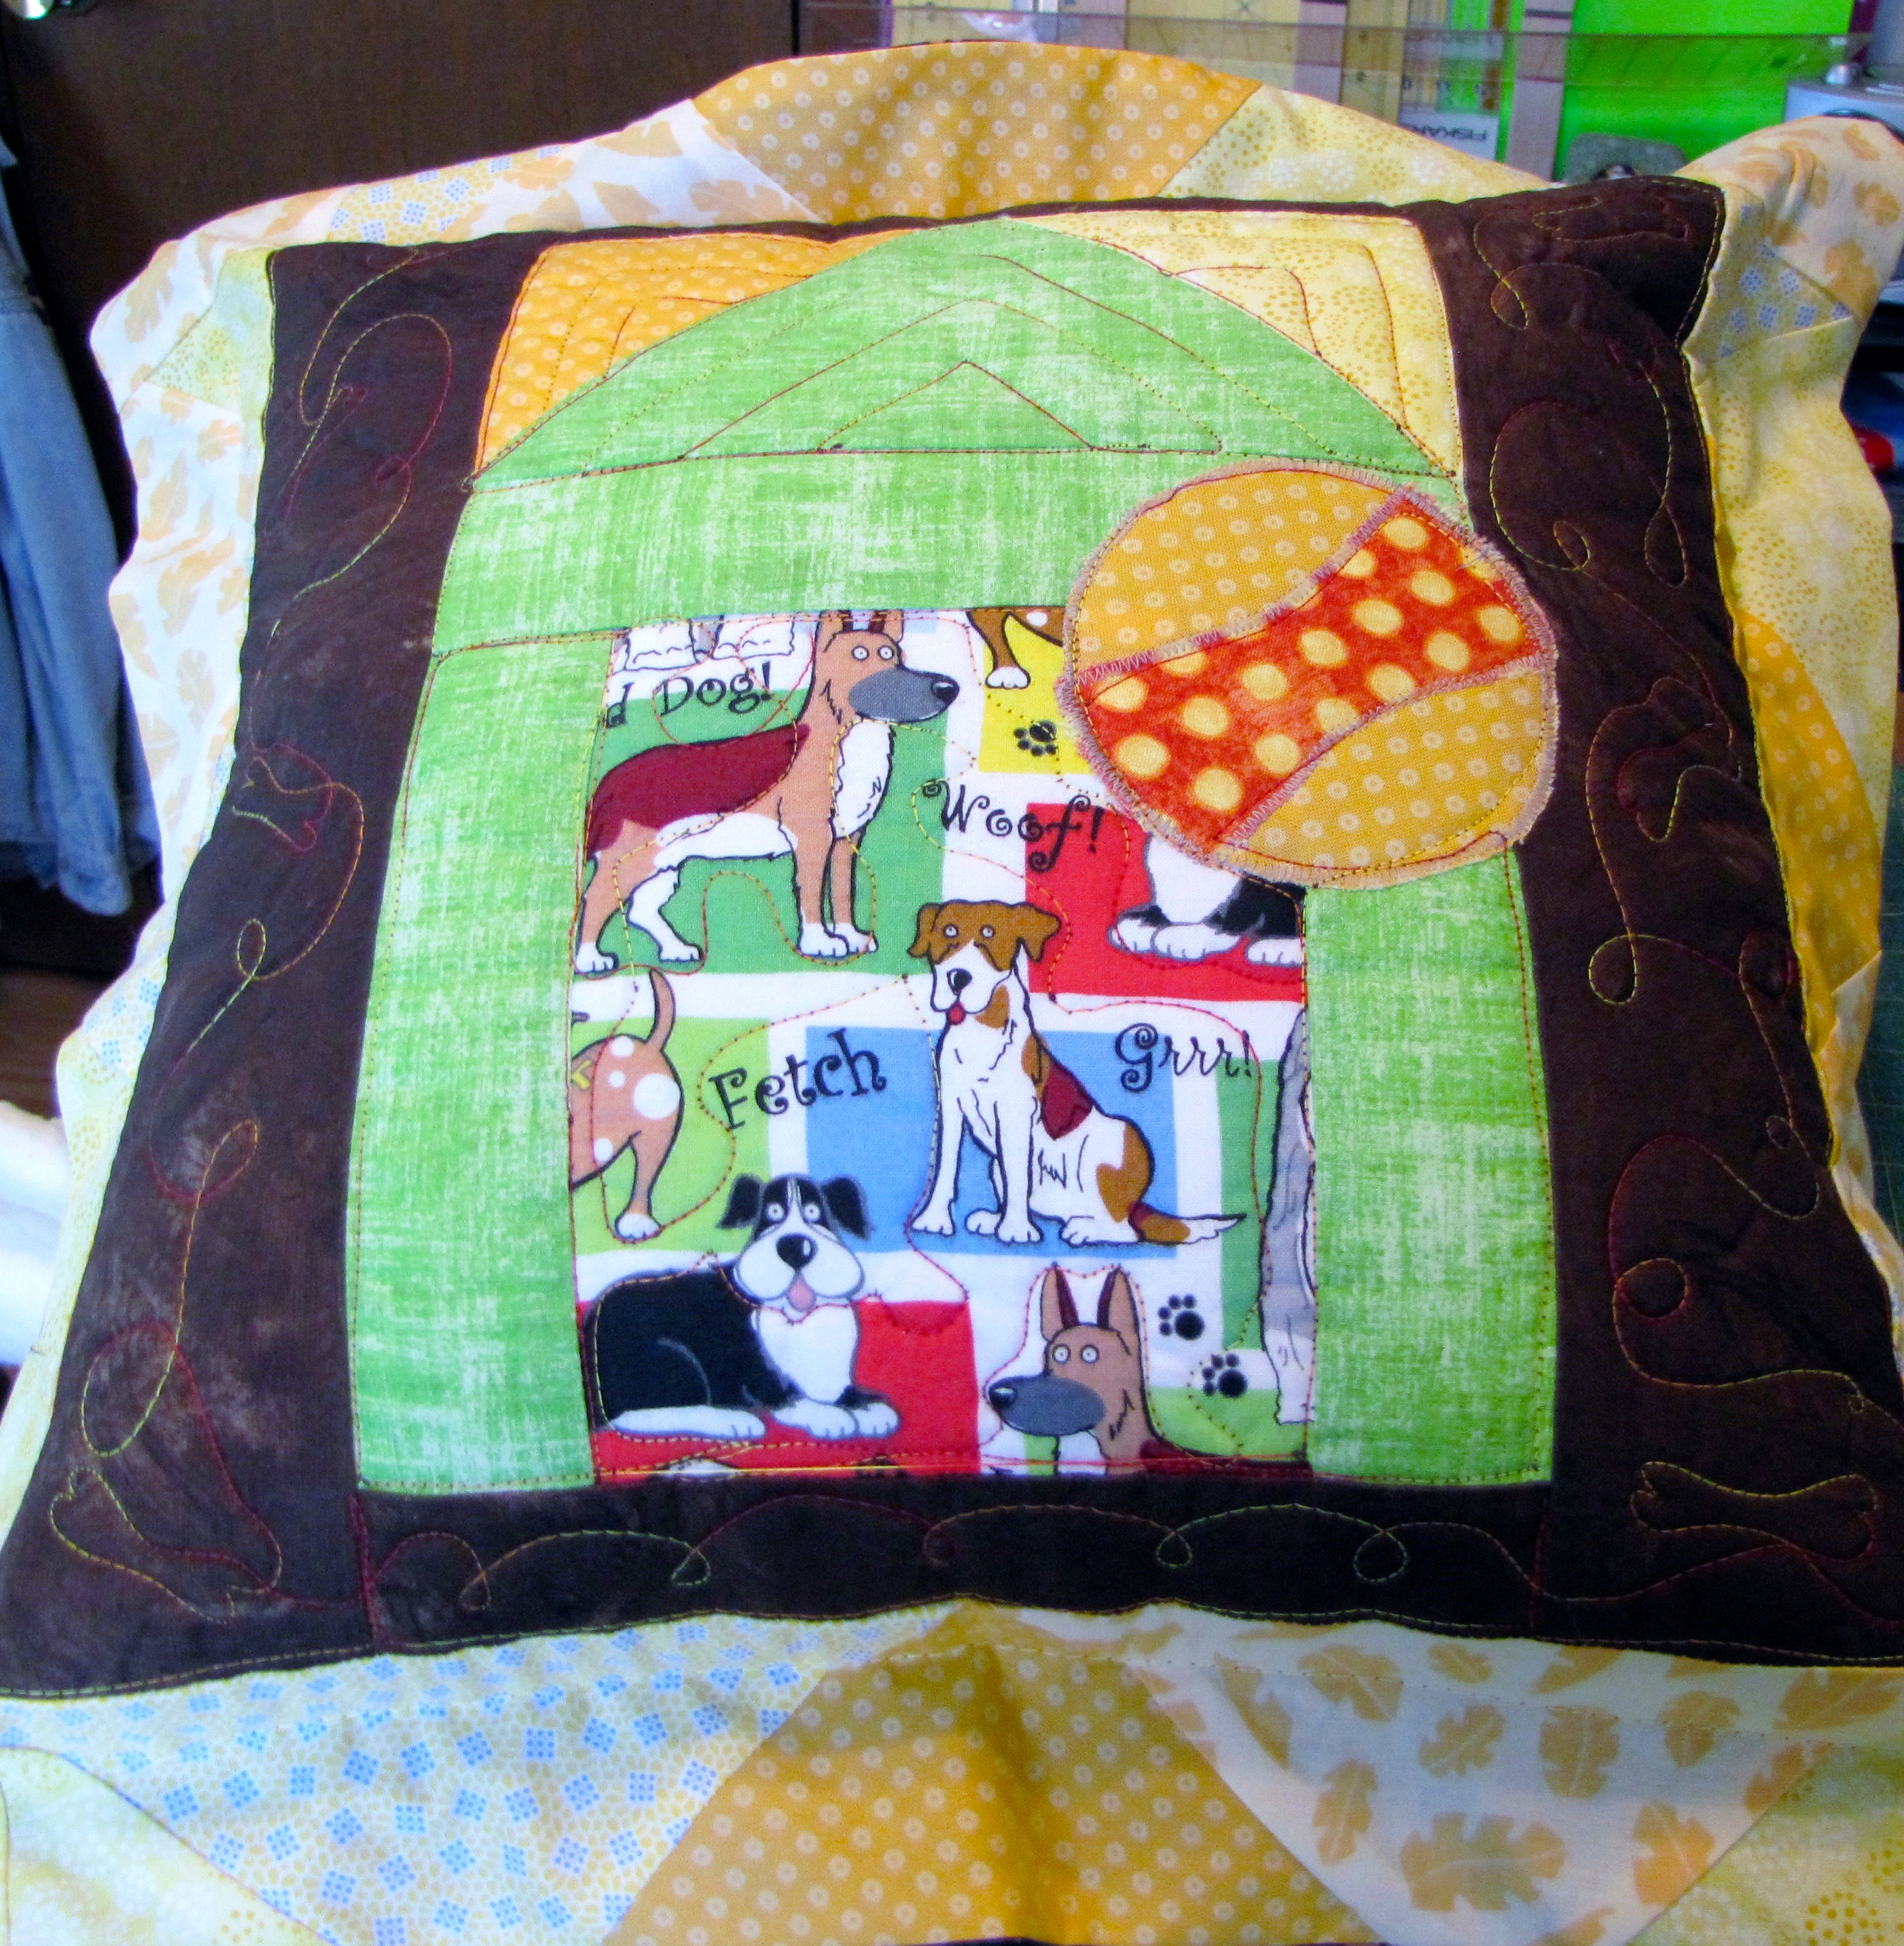 Linda created and donated this pillow and accompanying quilt for a no-kill shelter auction. The set fetched $1,200.